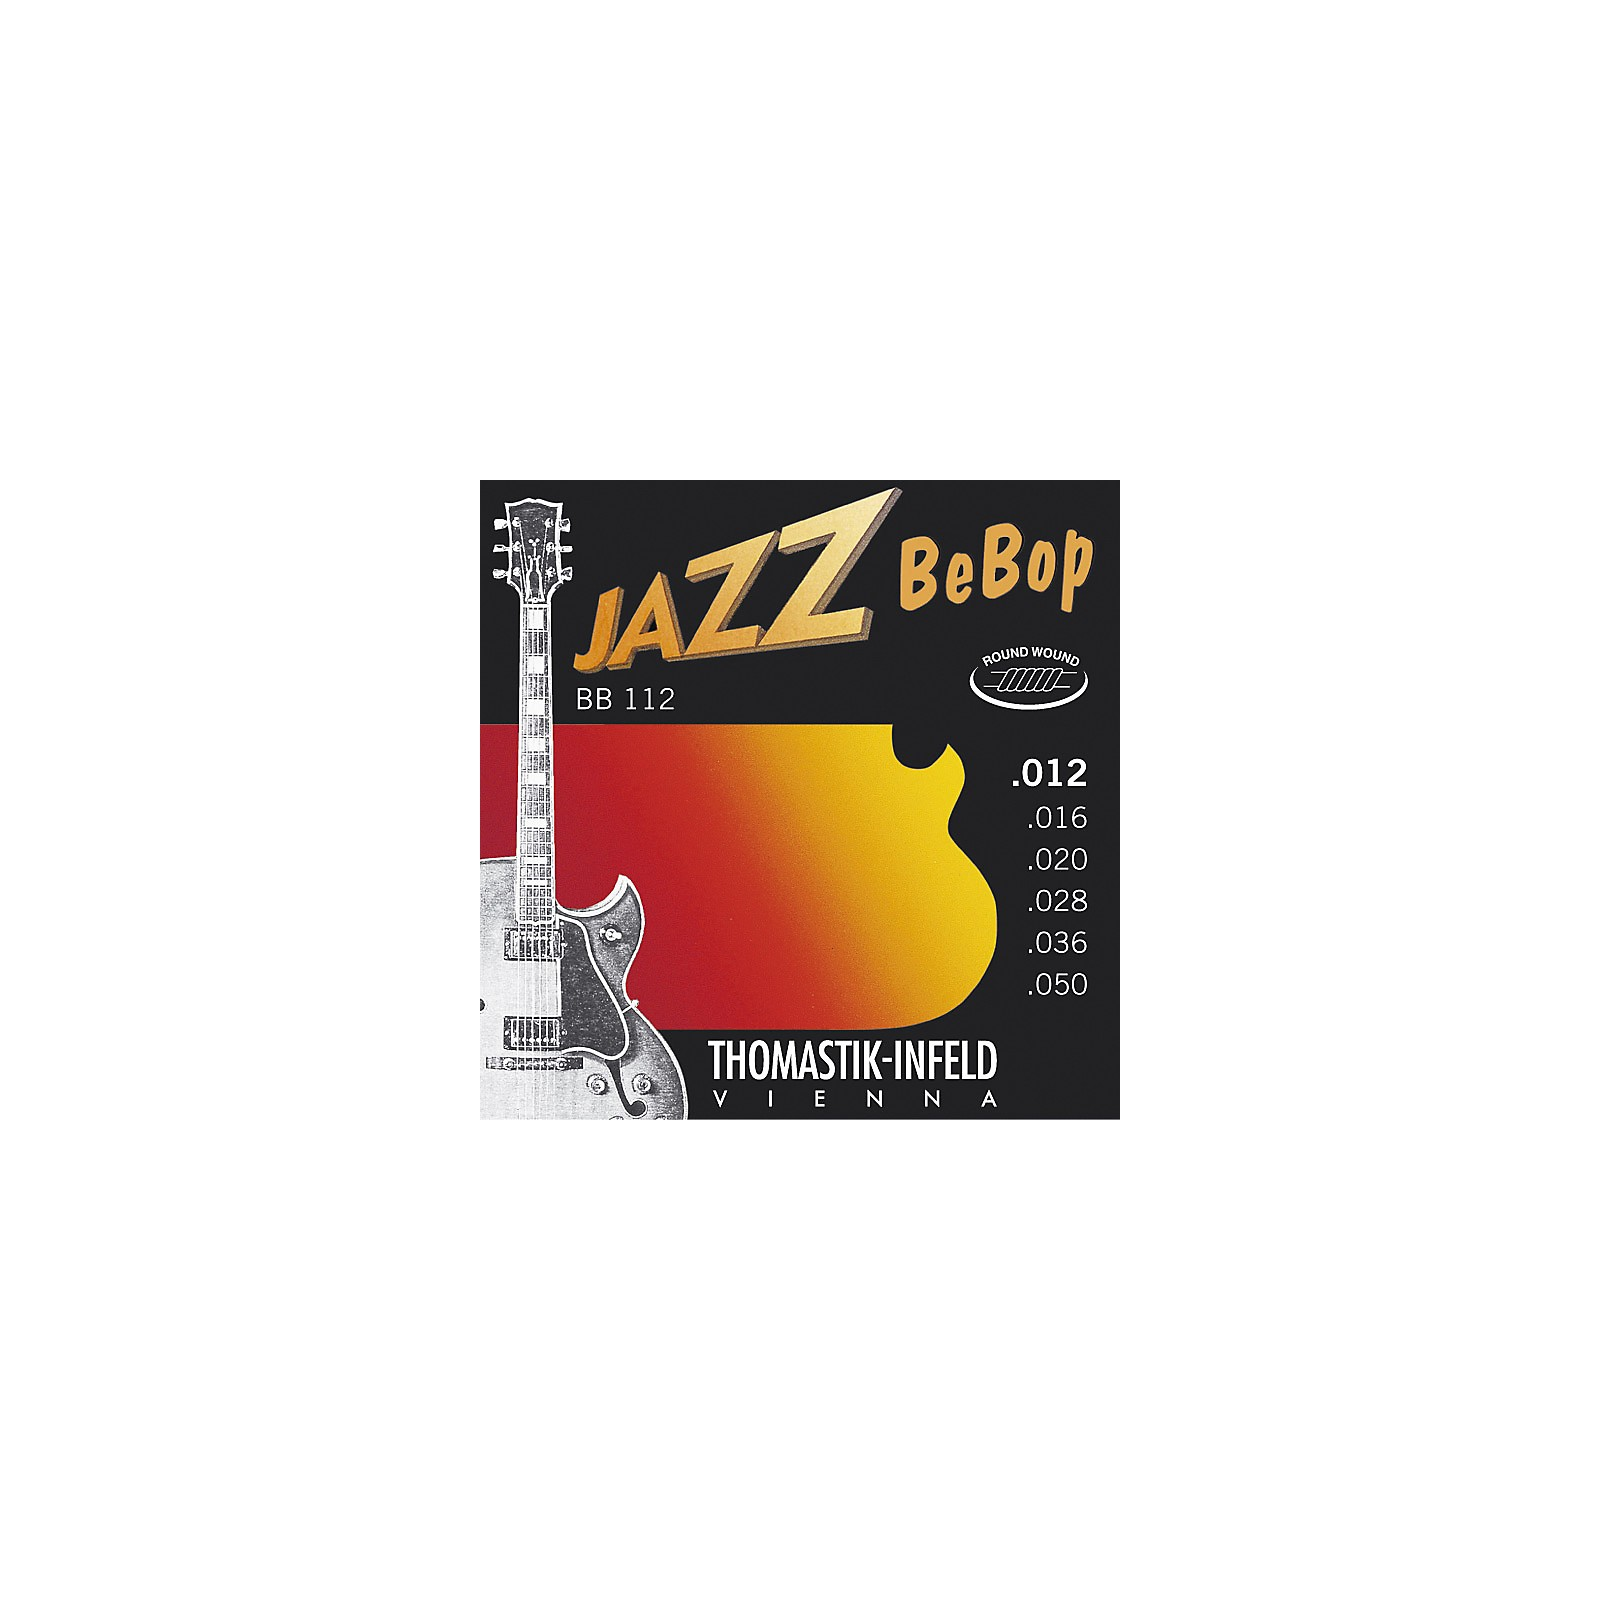 Thomastik BB112 Light Jazz BeBop Guitar Strings